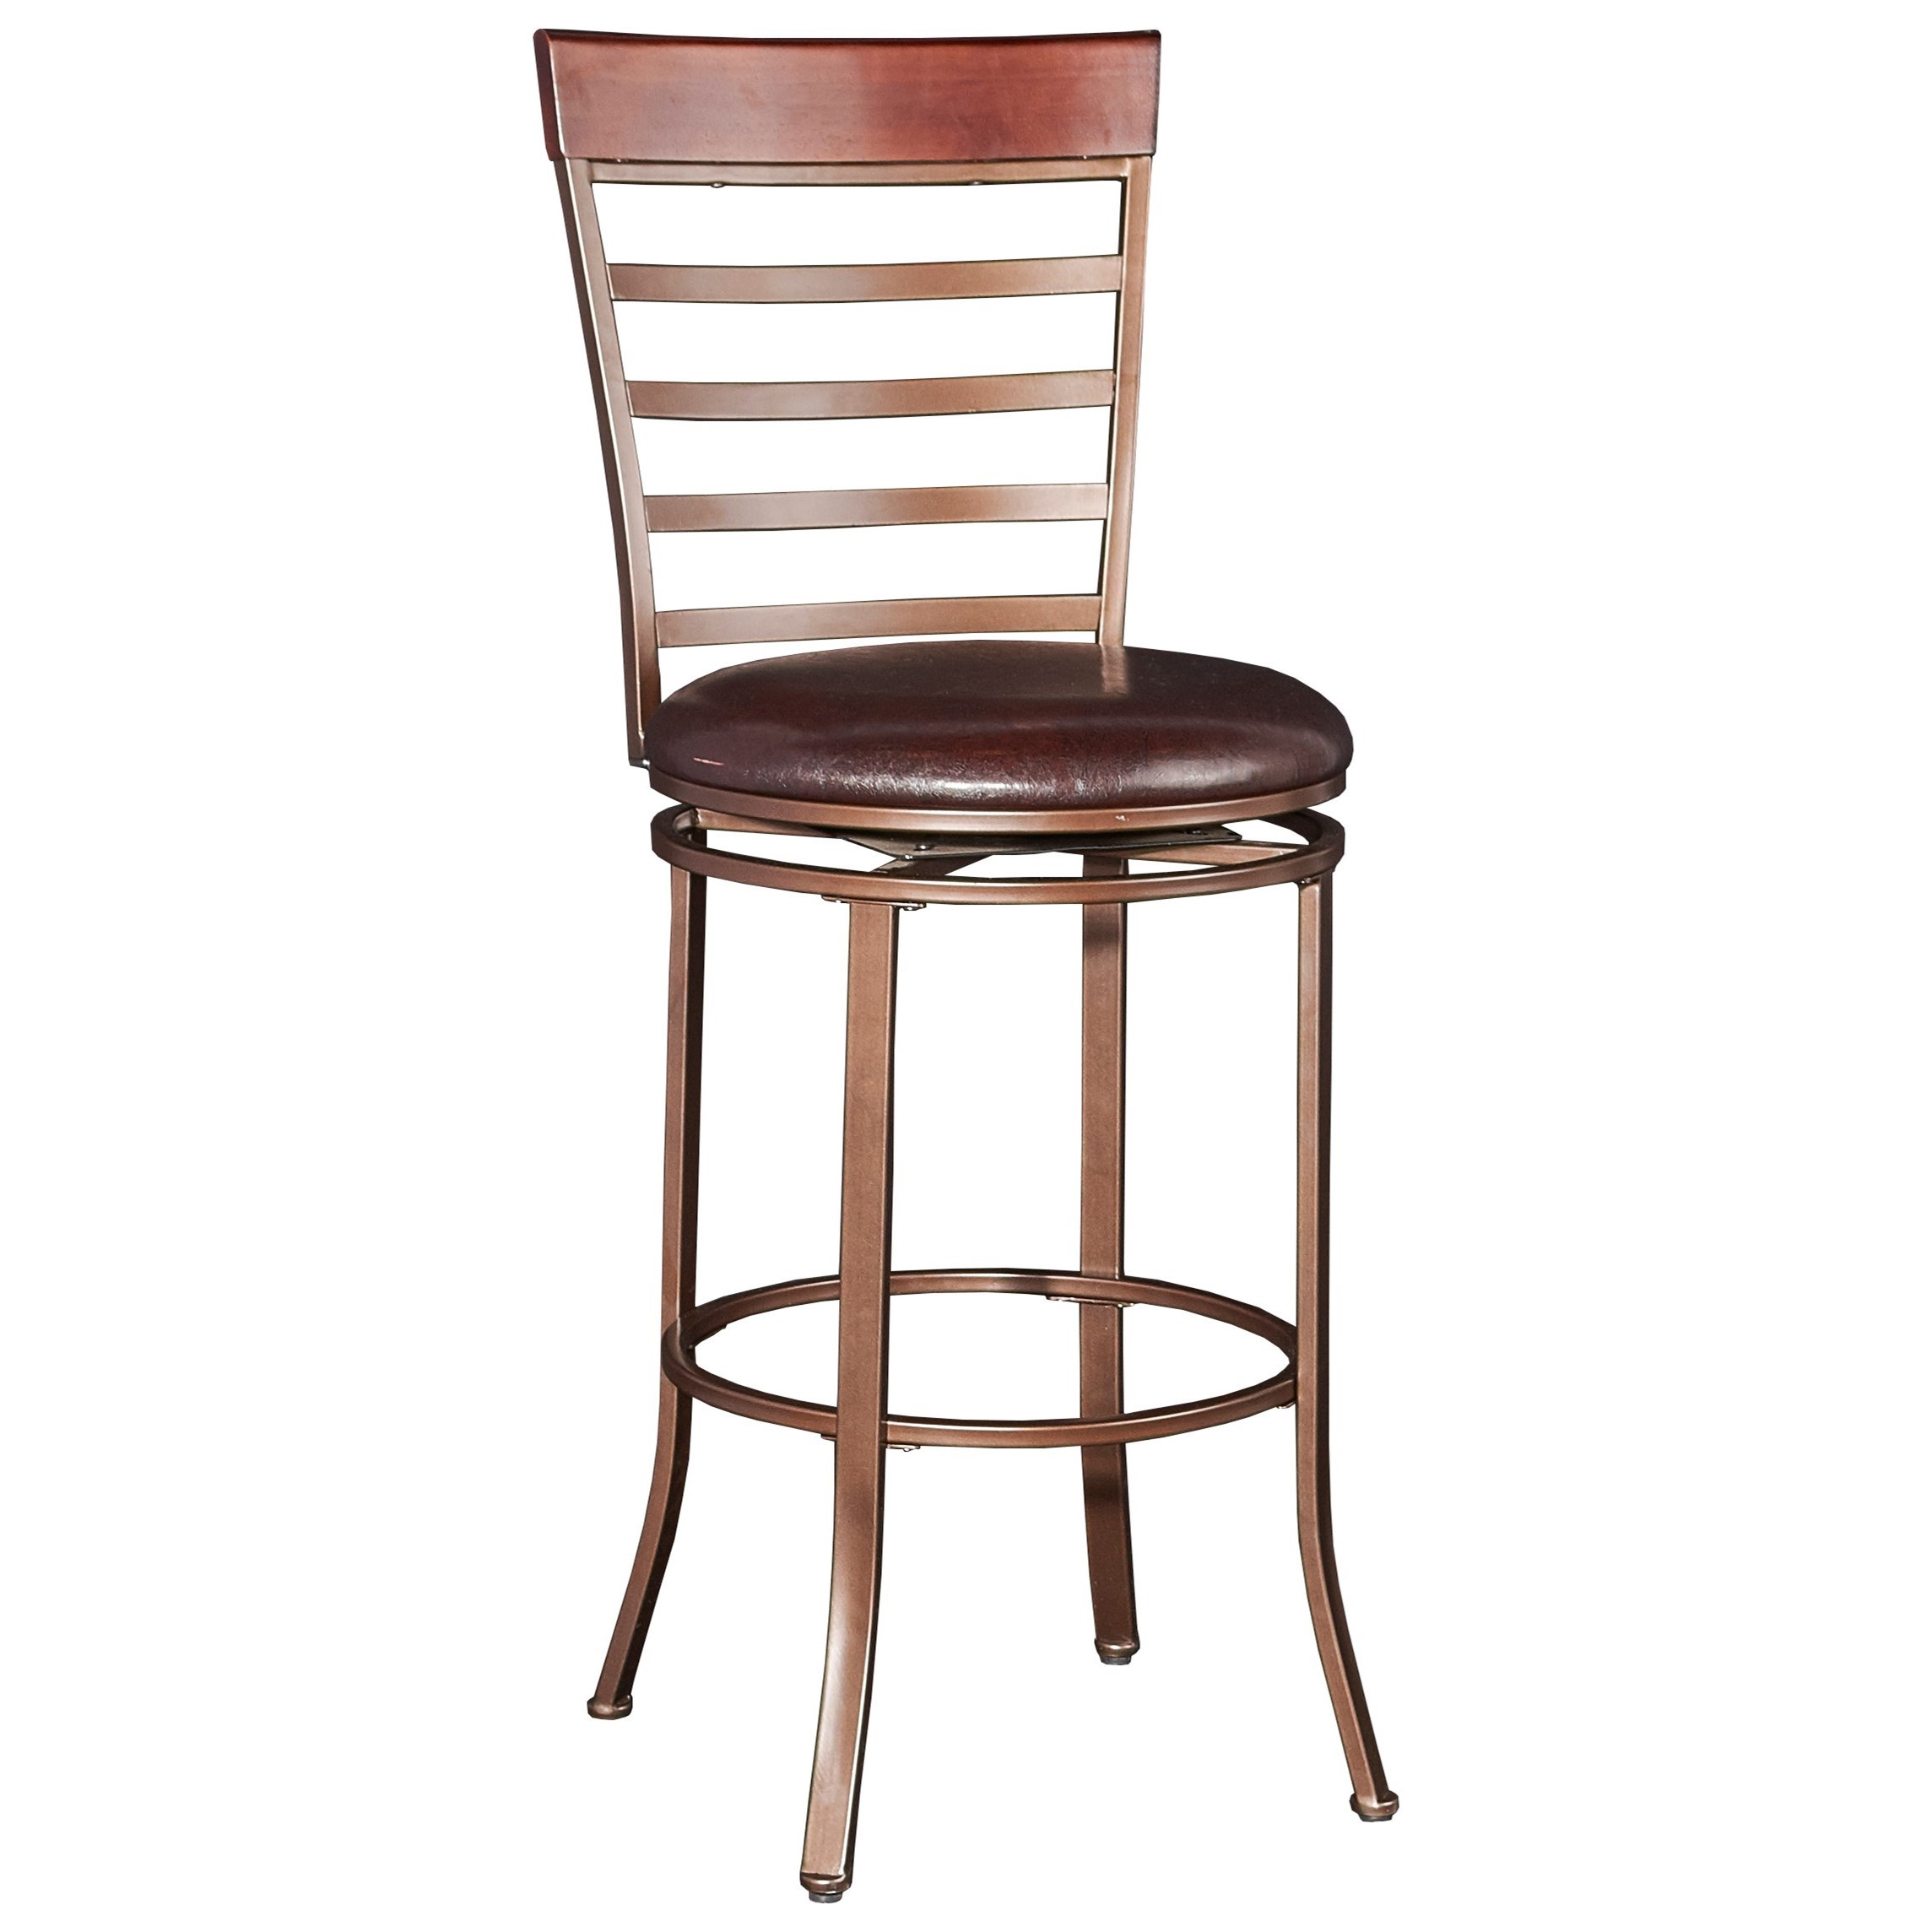 Powell Bar Stools amp Tables Miller Counter Stool Value  : products2Fpowell2Fcolor2Fbar20stools20p16b8218cs b1 from www.valuecitynj.com size 2289 x 2289 jpeg 273kB